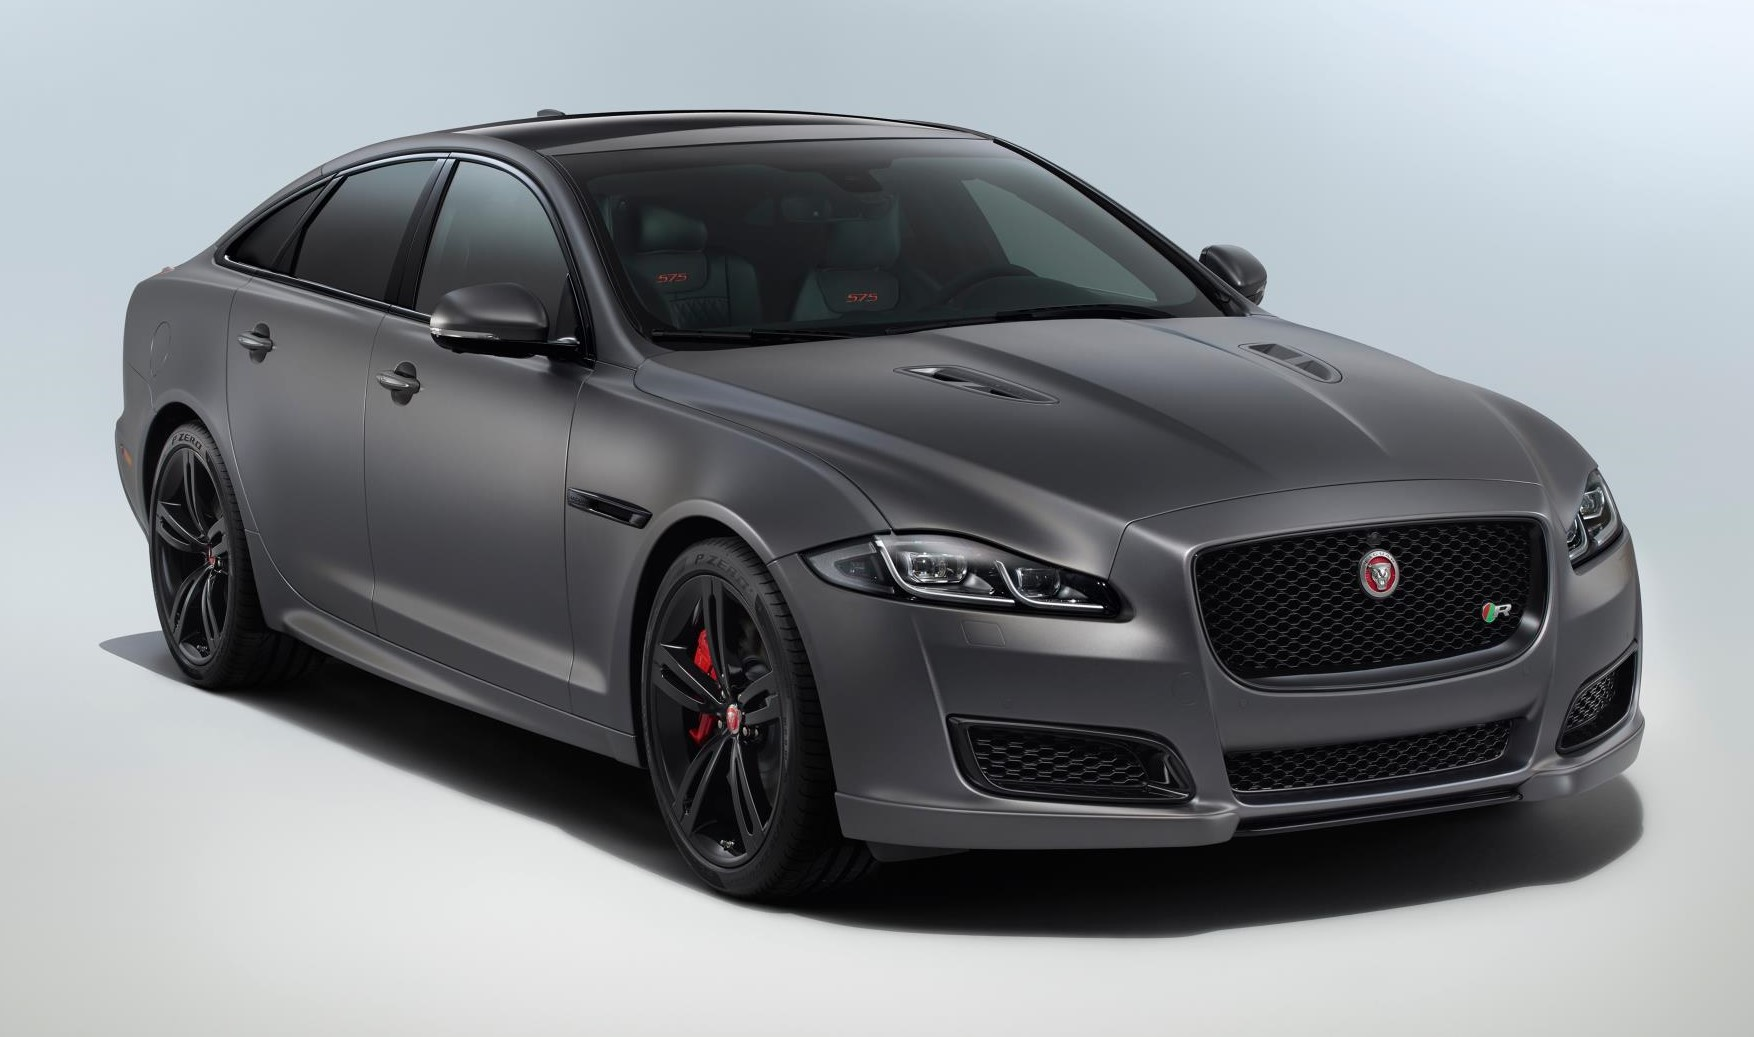 2018 jaguar xj. Black Bedroom Furniture Sets. Home Design Ideas